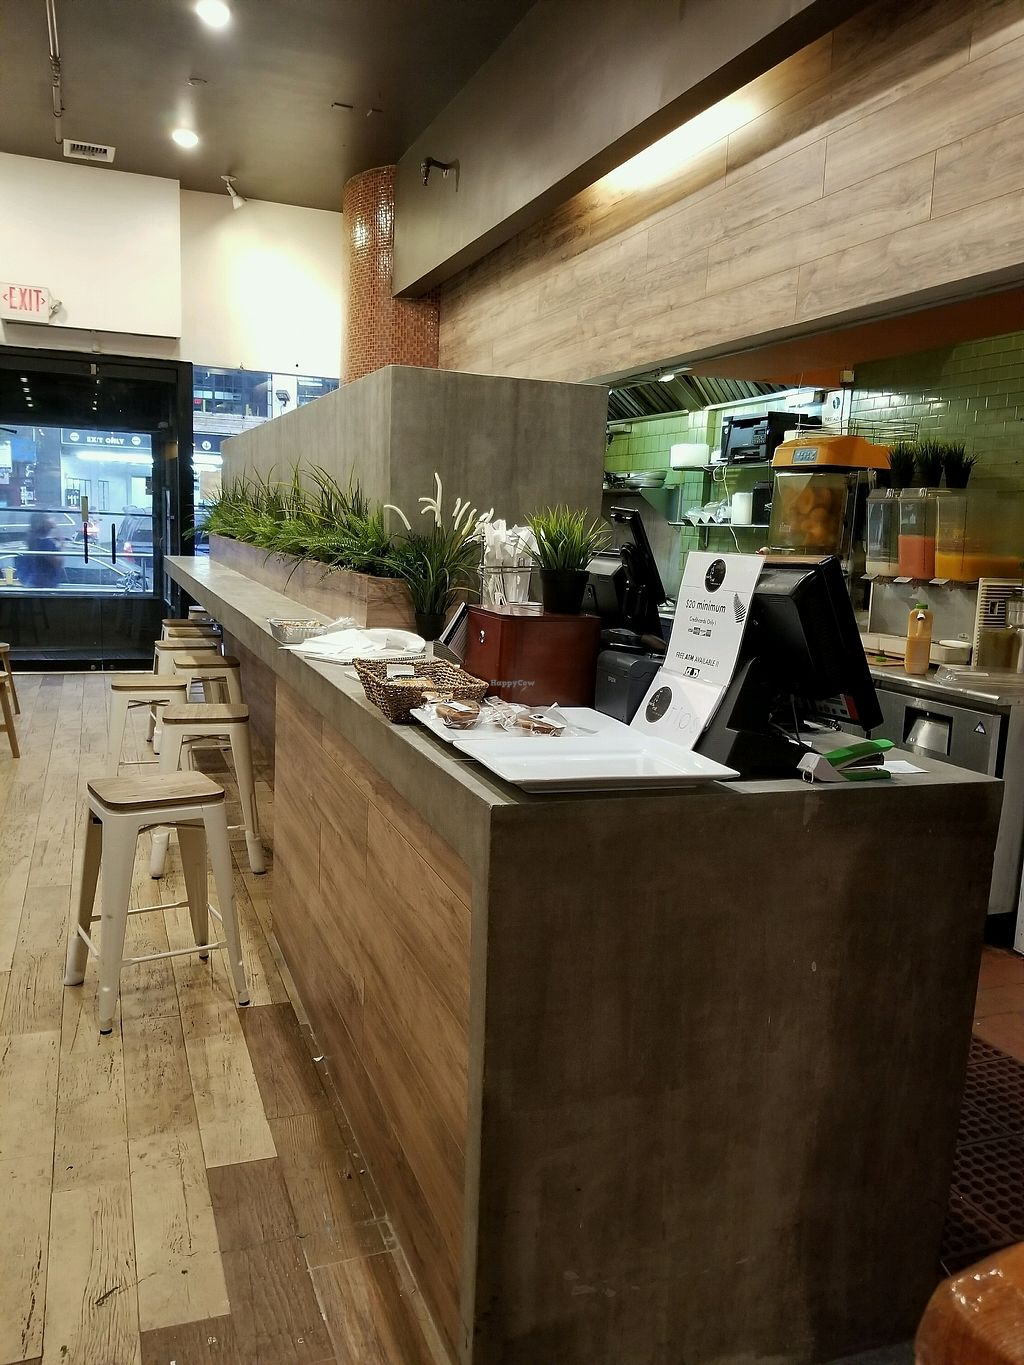 """Photo of Pick & Eat  by <a href=""""/members/profile/footprint_0"""">footprint_0</a> <br/>more seats upstairs <br/> October 8, 2017  - <a href='/contact/abuse/image/102035/312970'>Report</a>"""